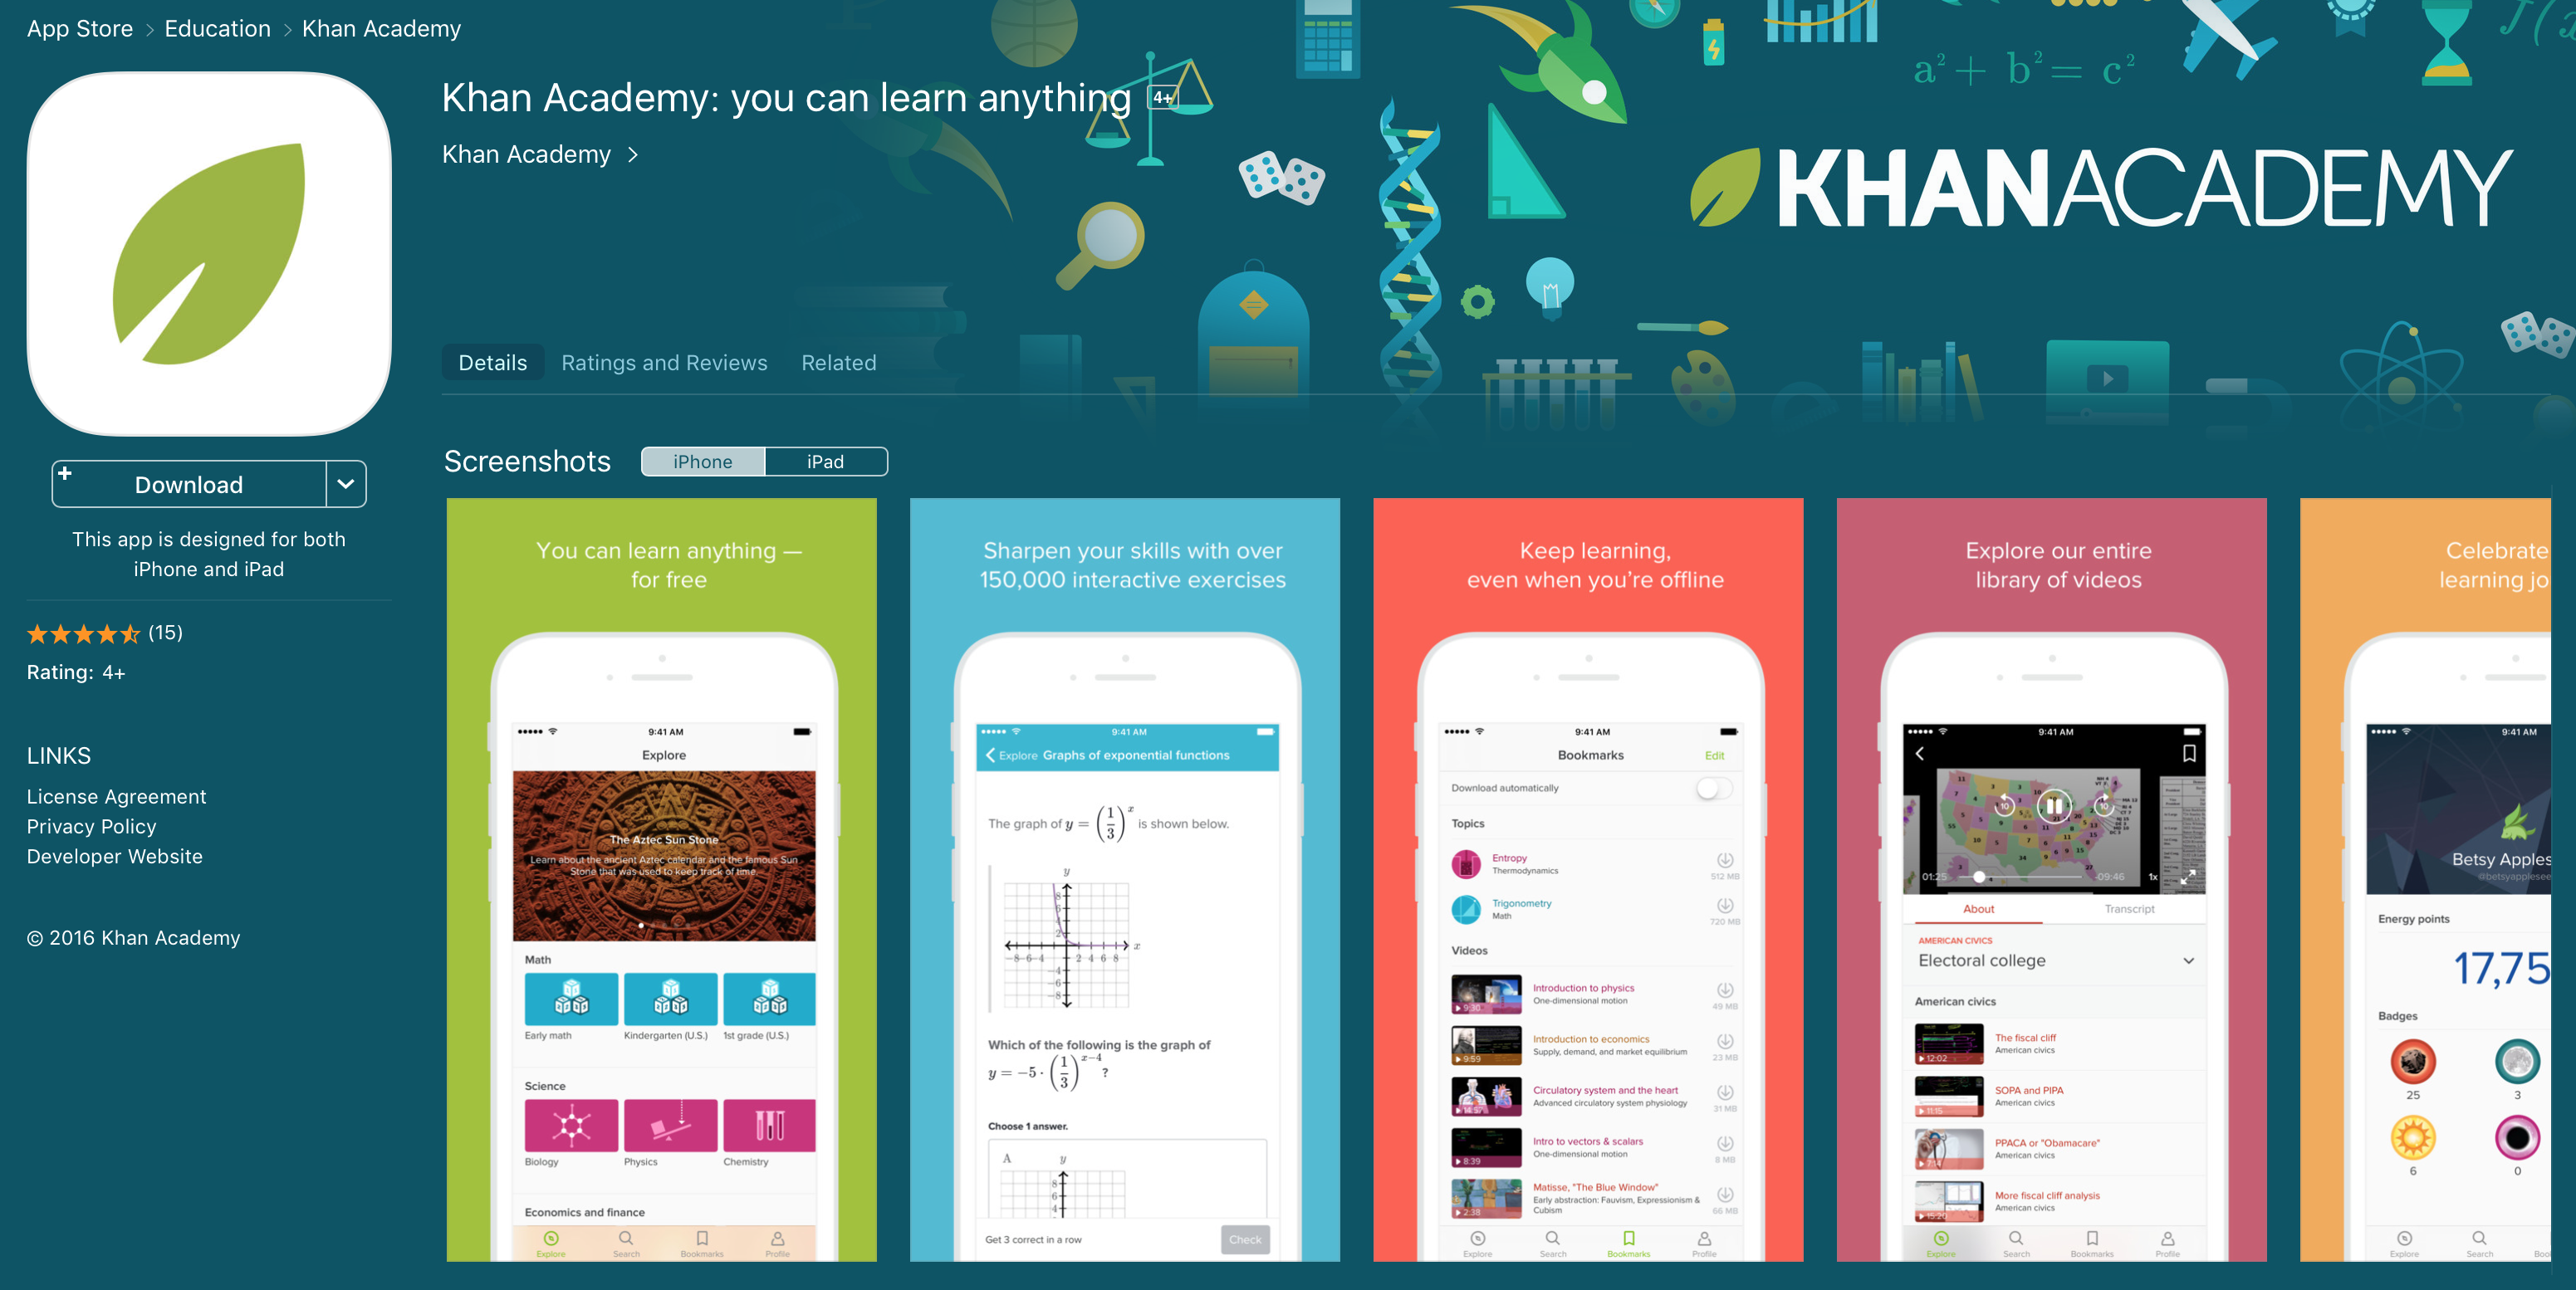 Khan Academy in the App Store